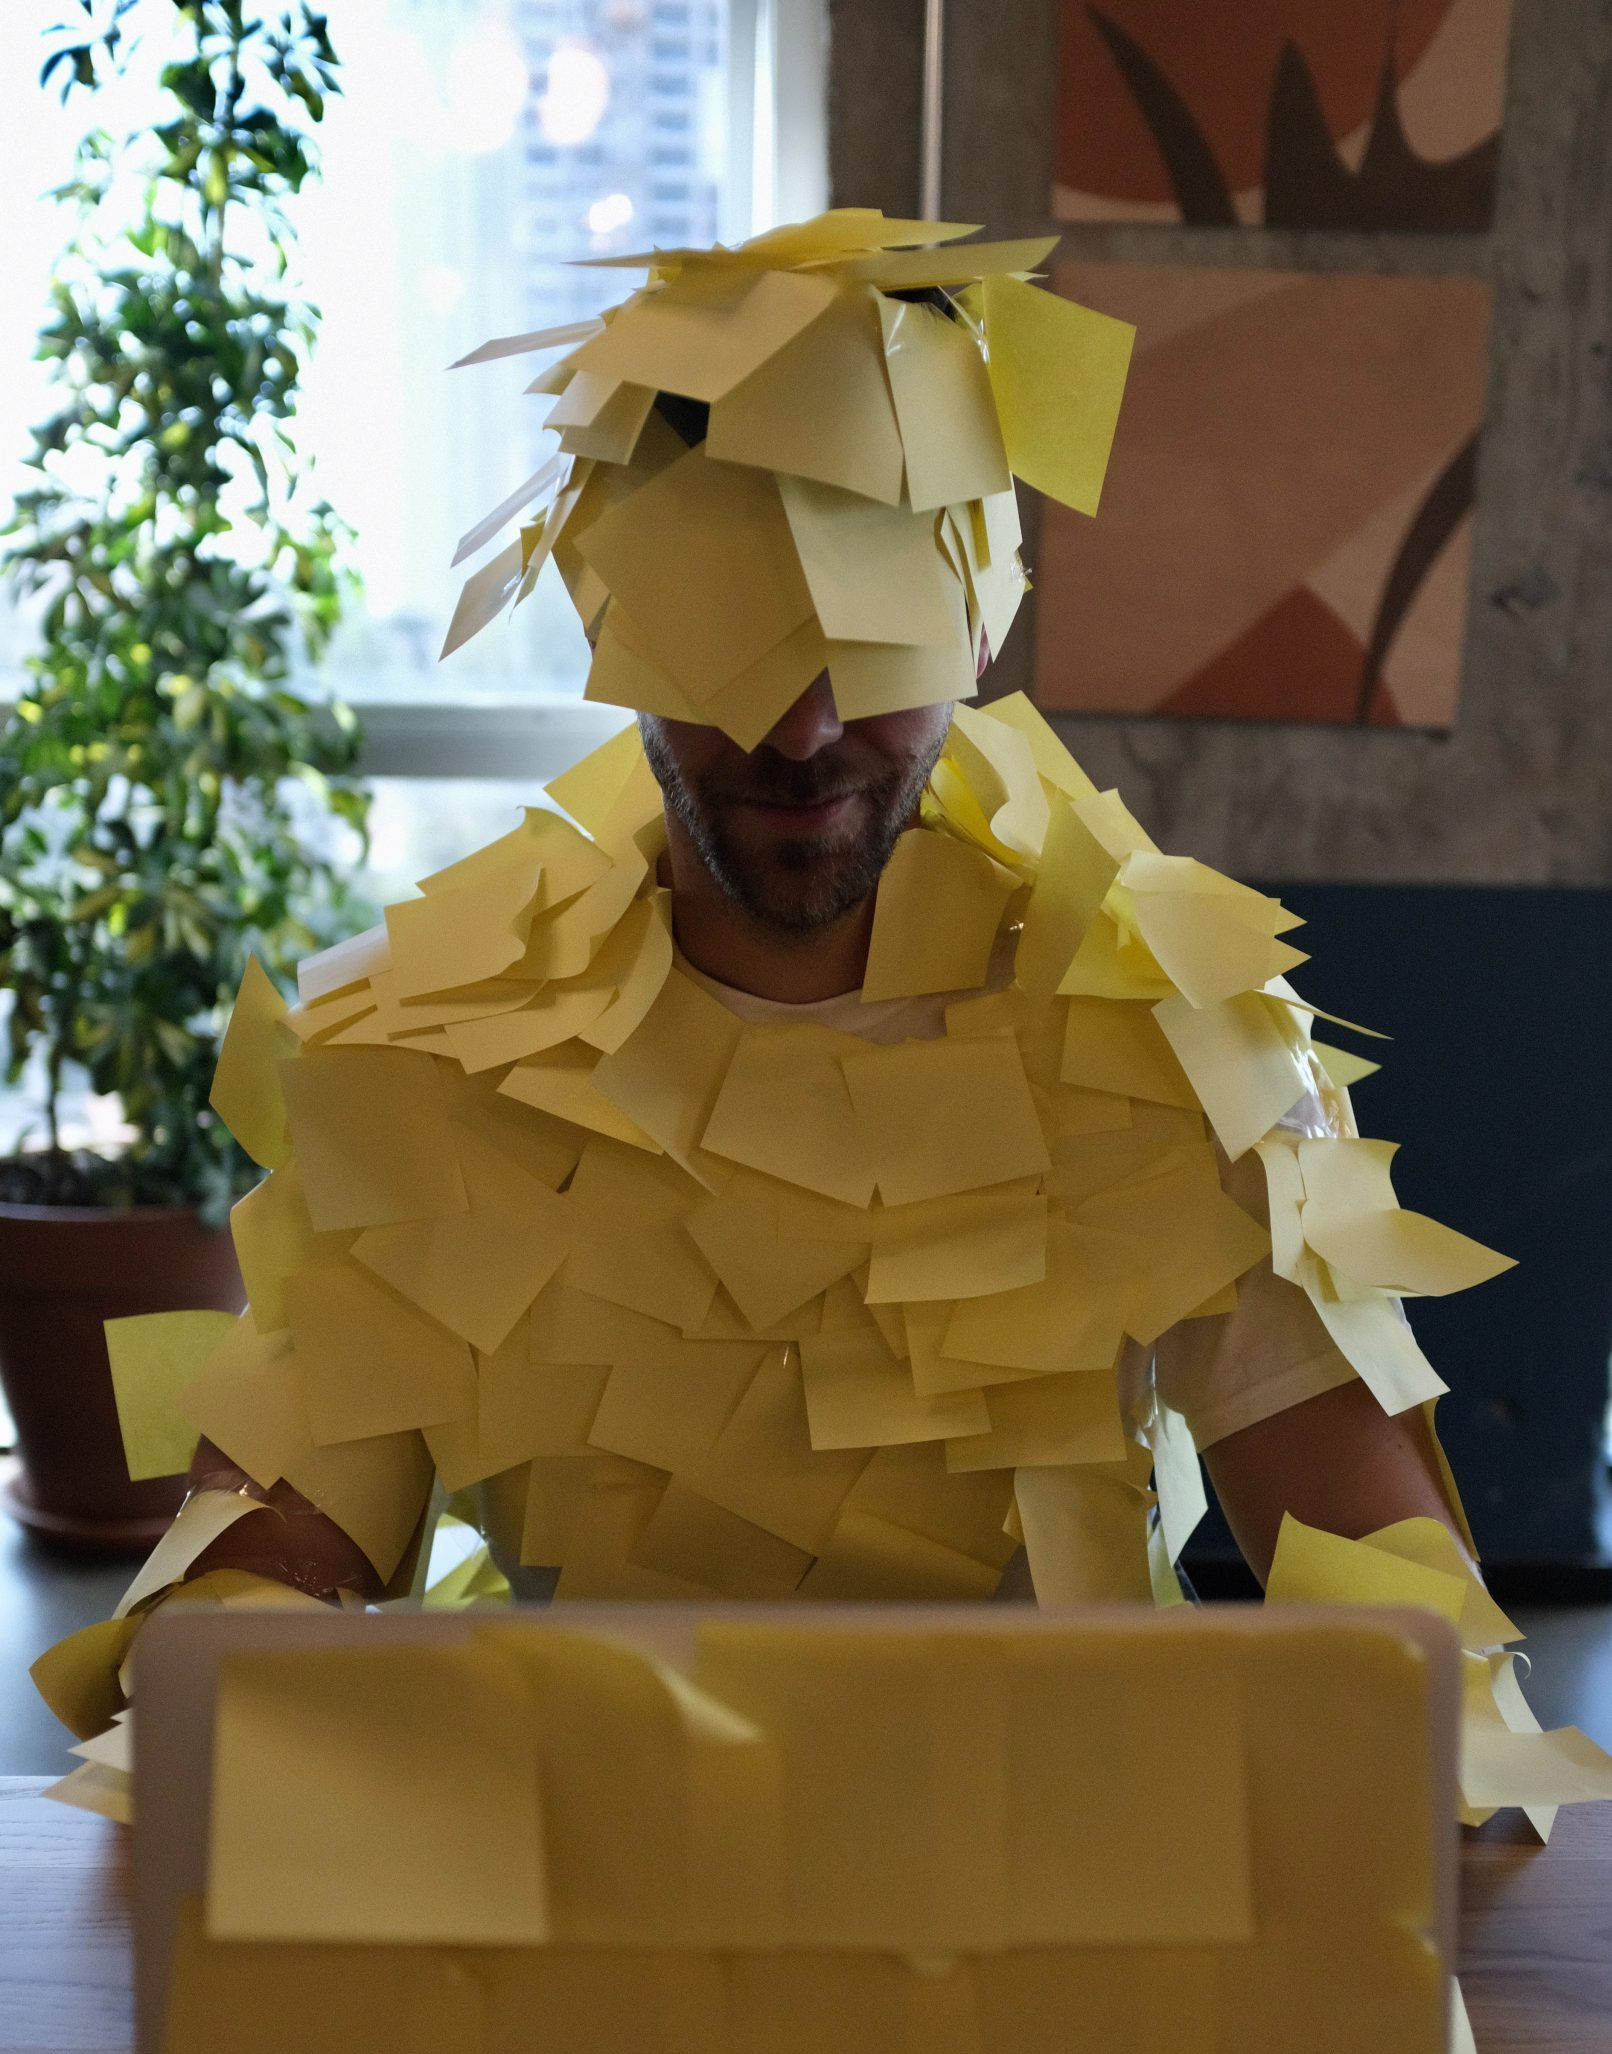 A person covered in sticky notes